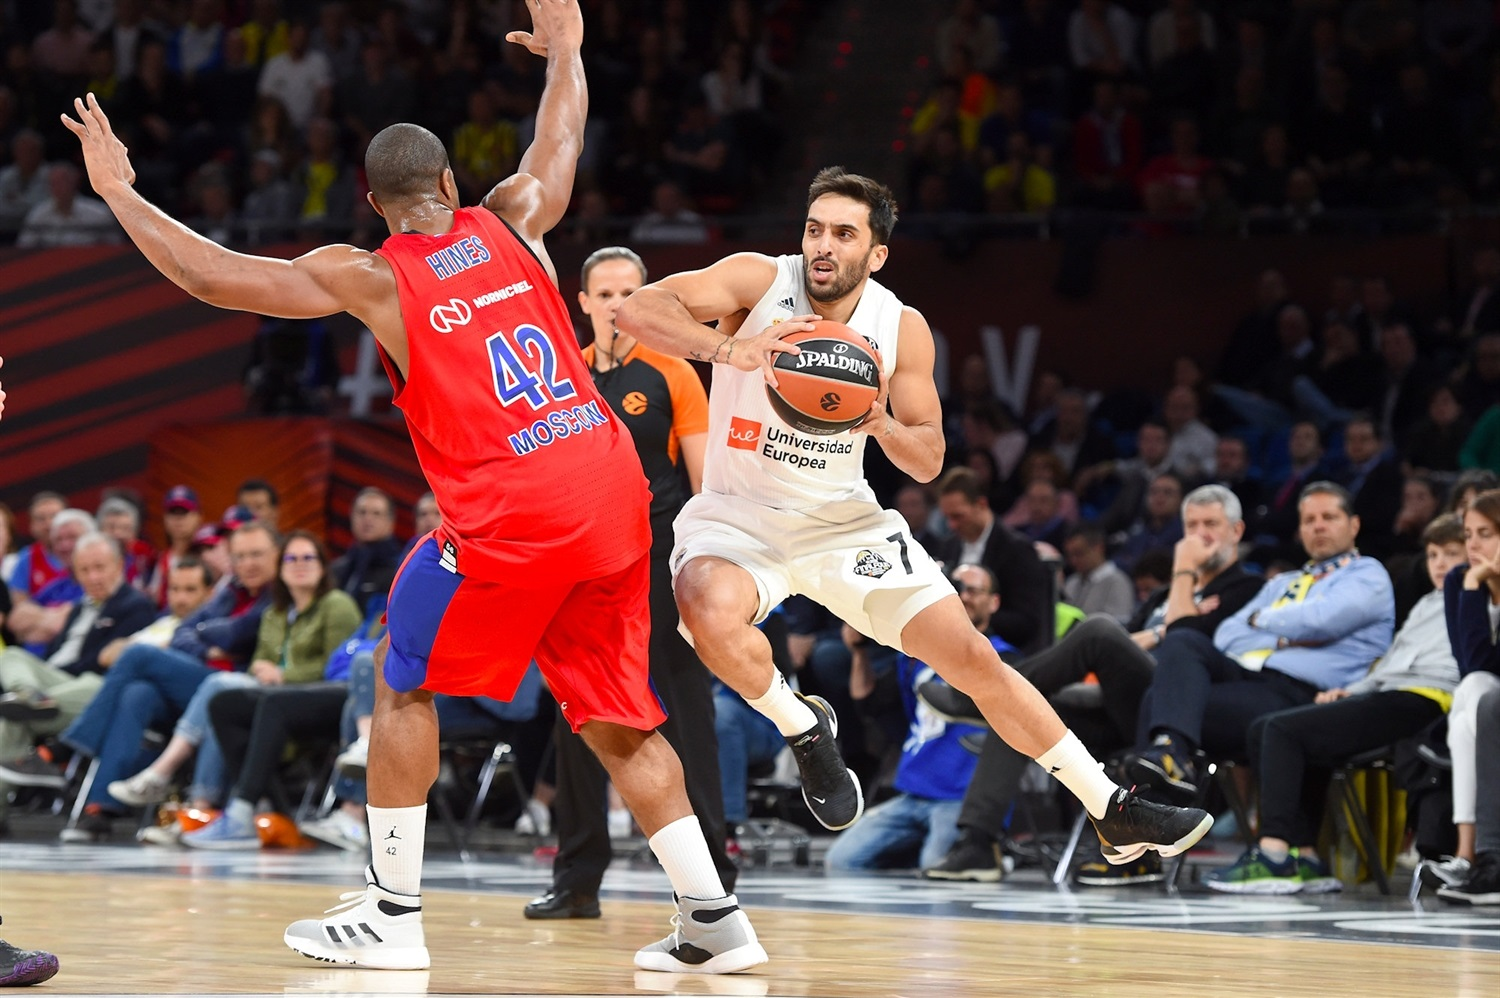 Facundo Campazzo - Real Madrid - Final Four Vitoria-Gasteiz 2019 - EB18